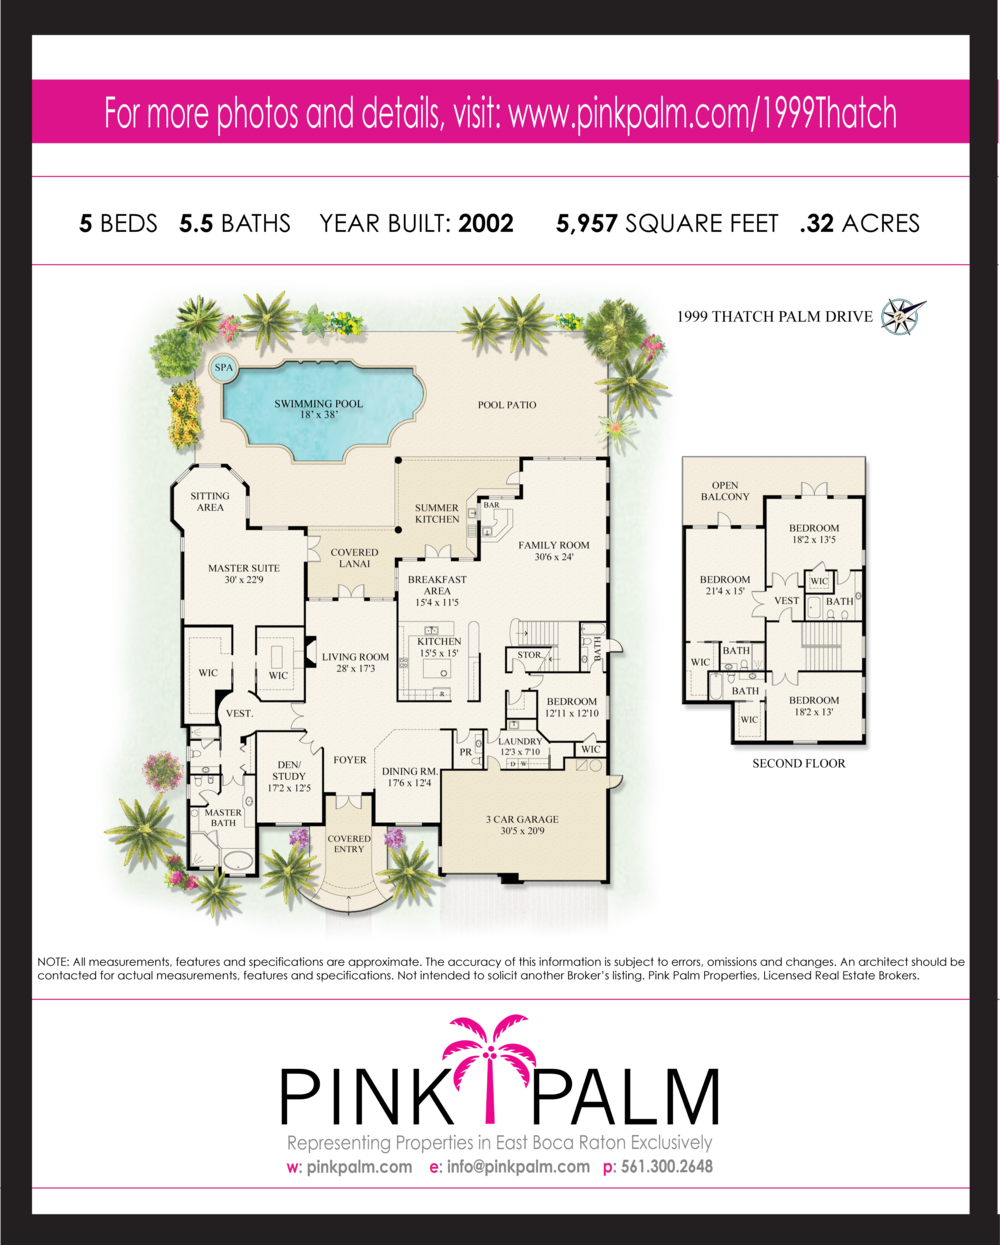 1500 SW 5TH AVE FLOOR PLAN